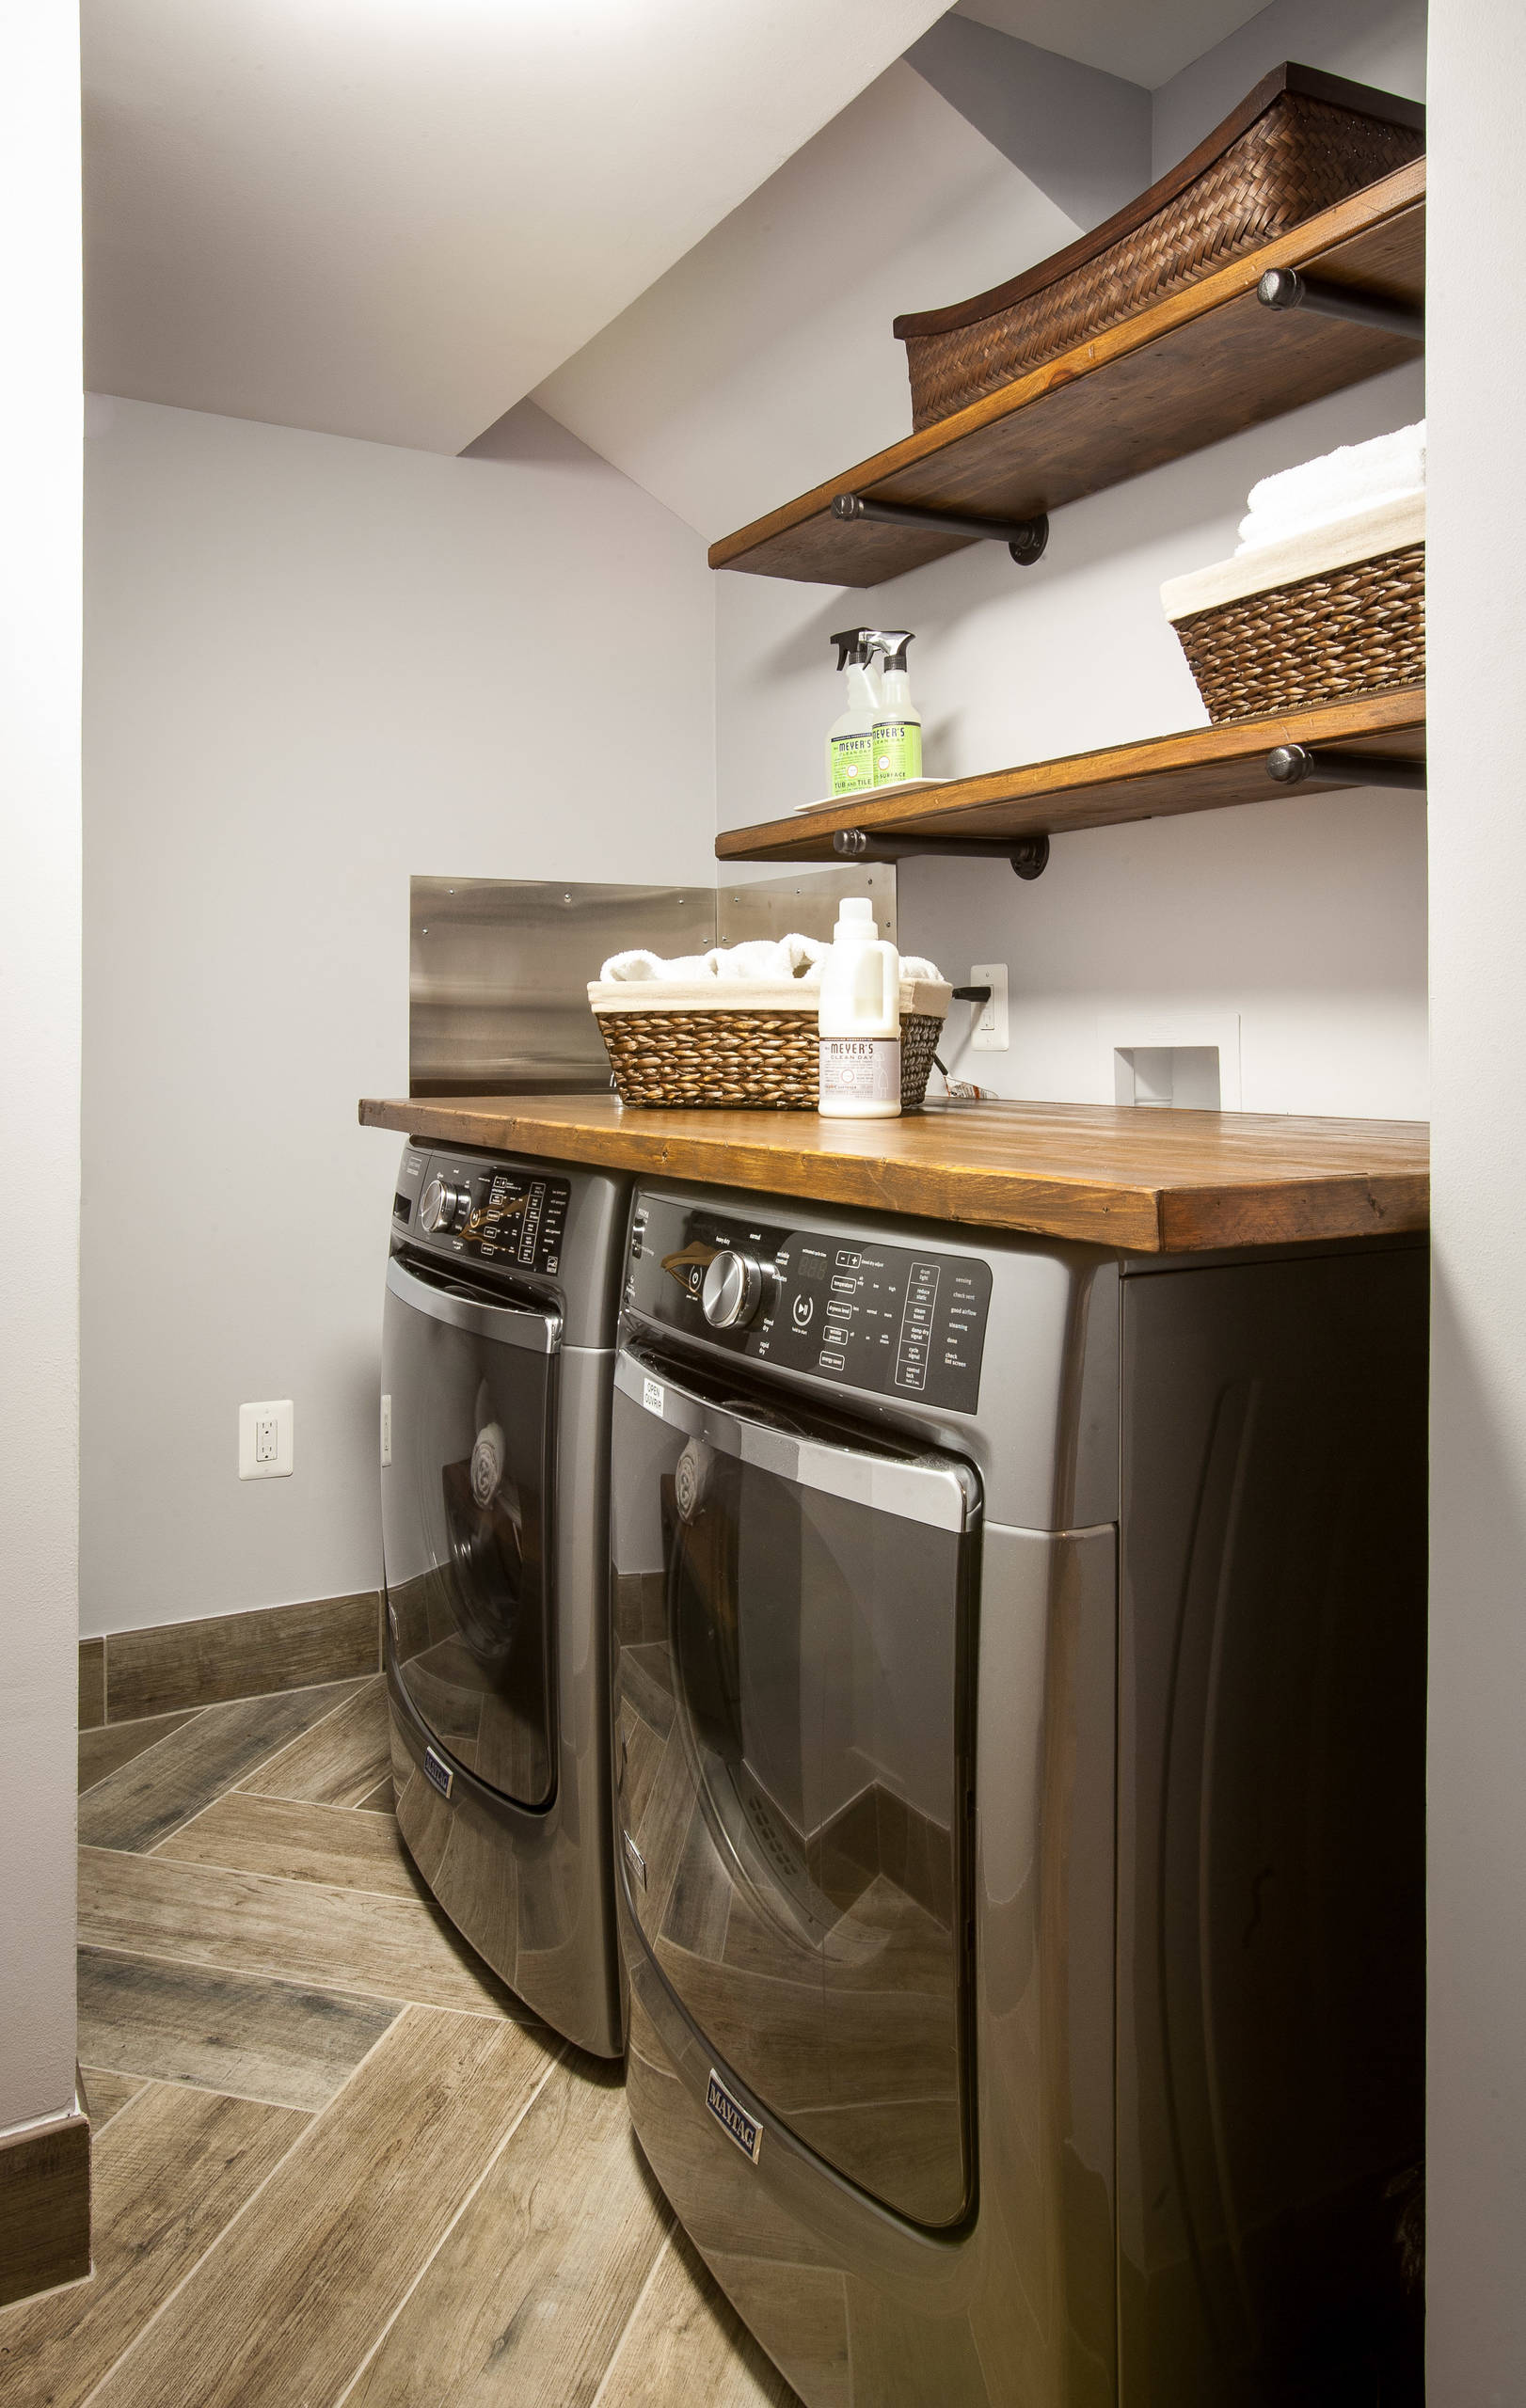 75 Beautiful Small Rustic Laundry Room Pictures Ideas December 2020 Houzz